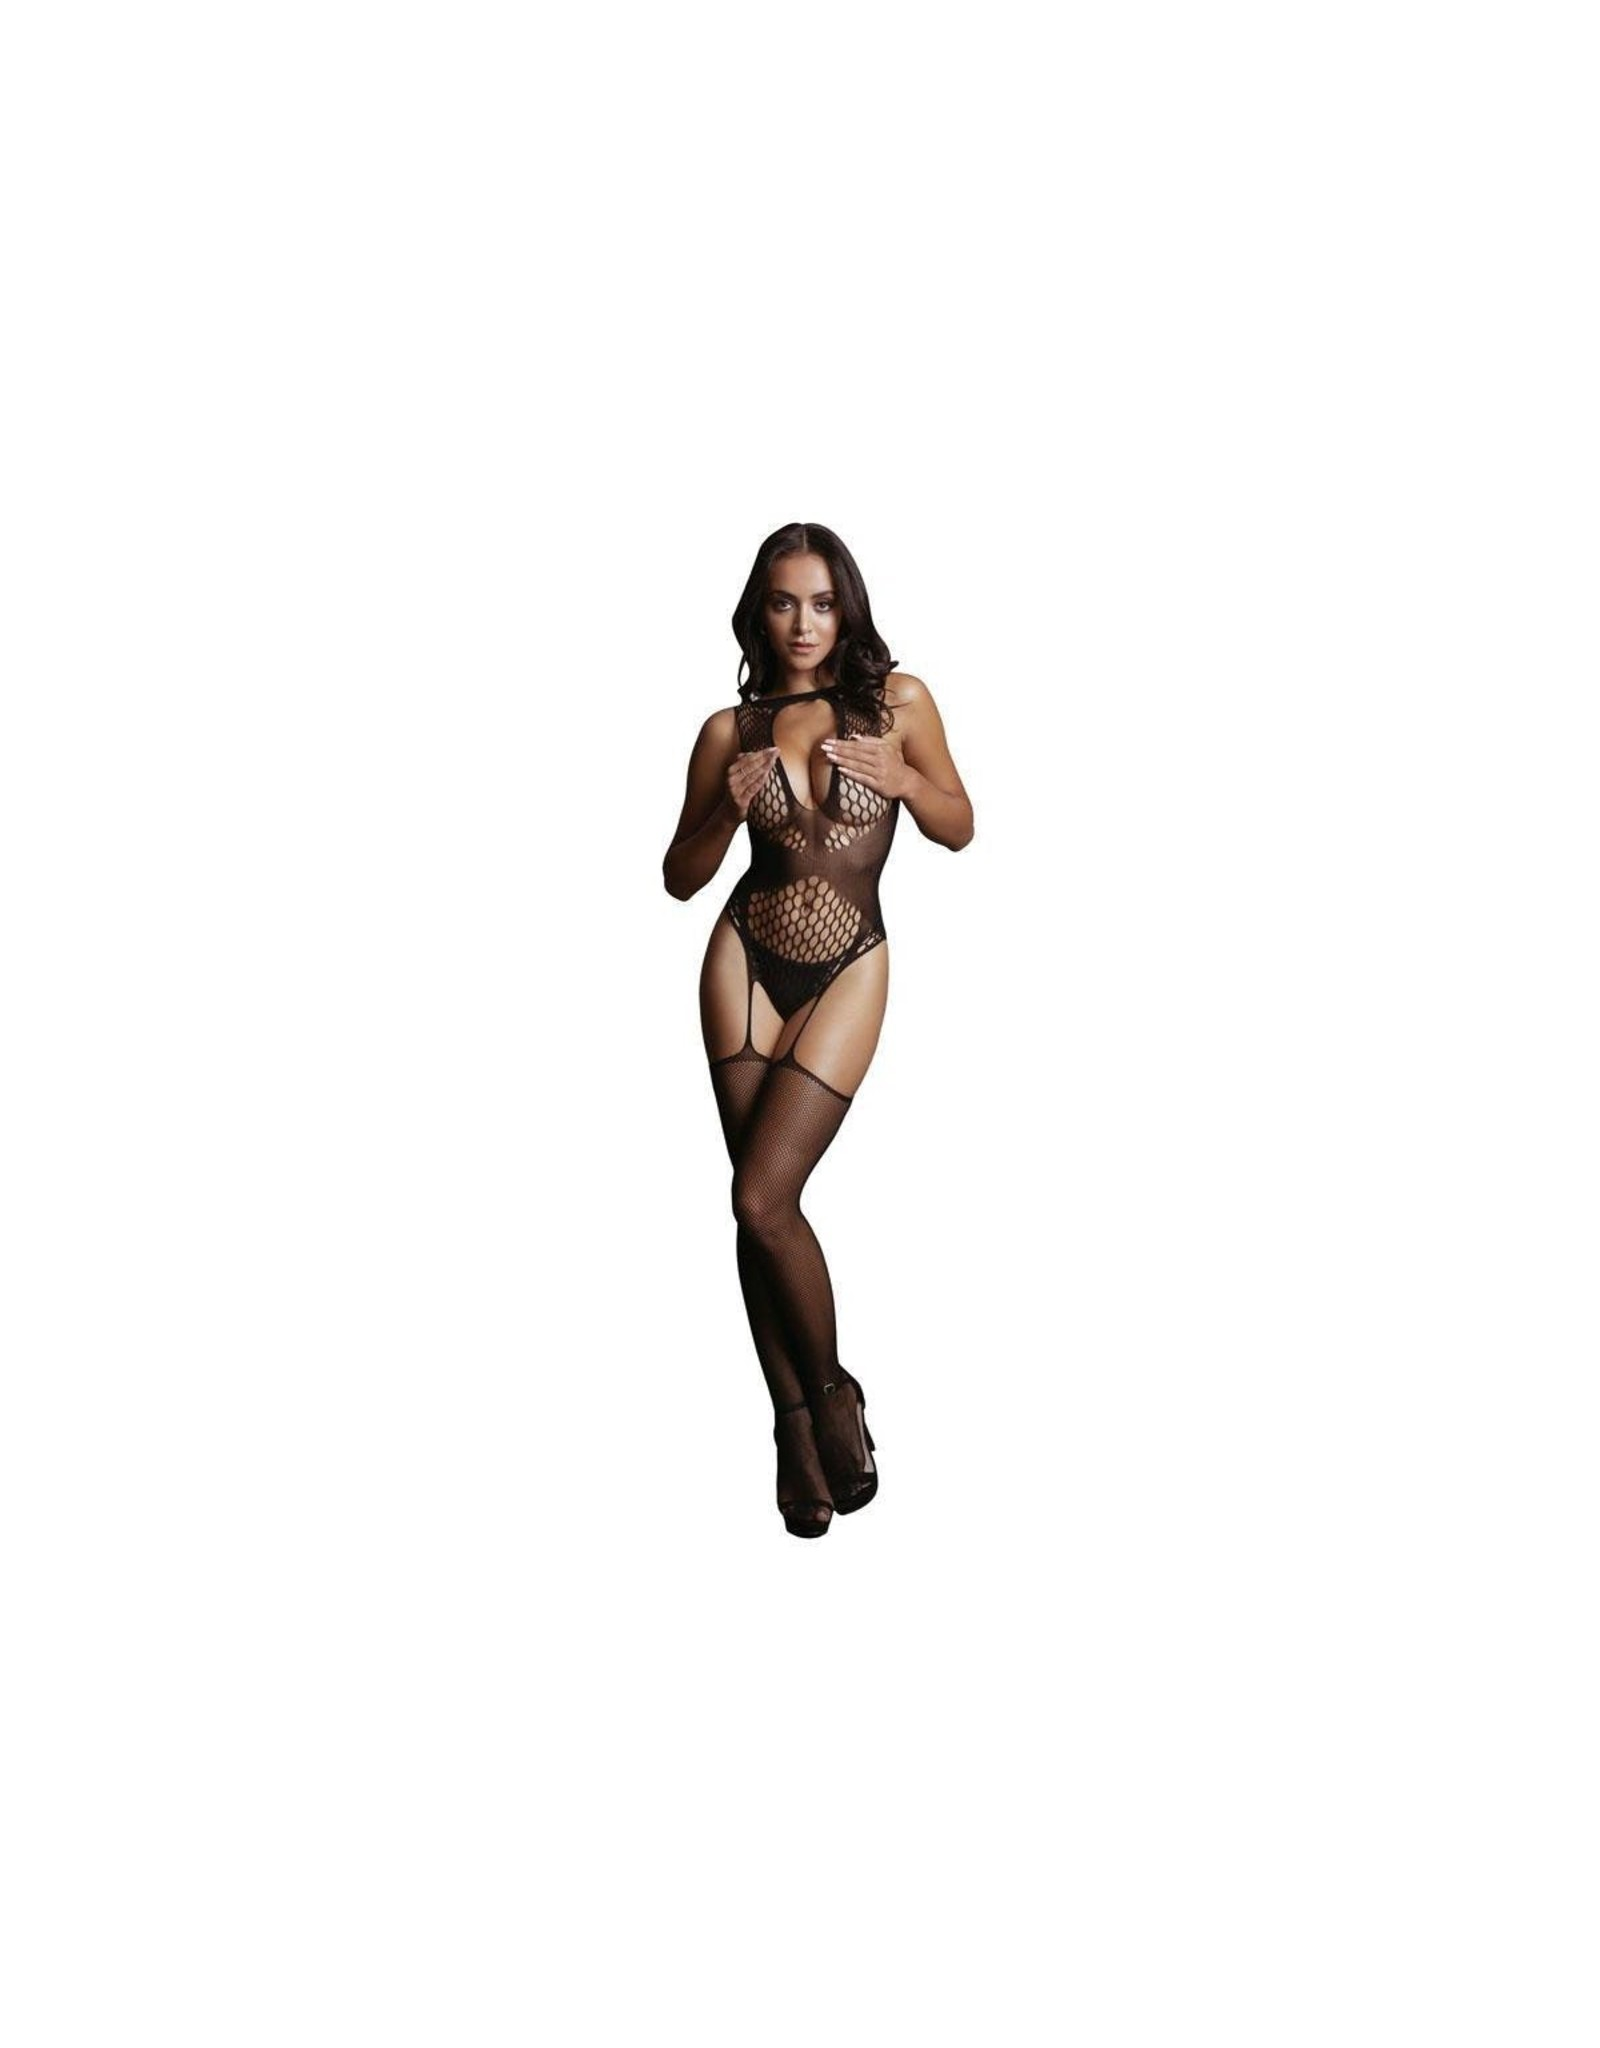 LE DESIR LE DESIR - CONTRAST SUSPENDER BODYSTOCKING BLACK ONE SIZE